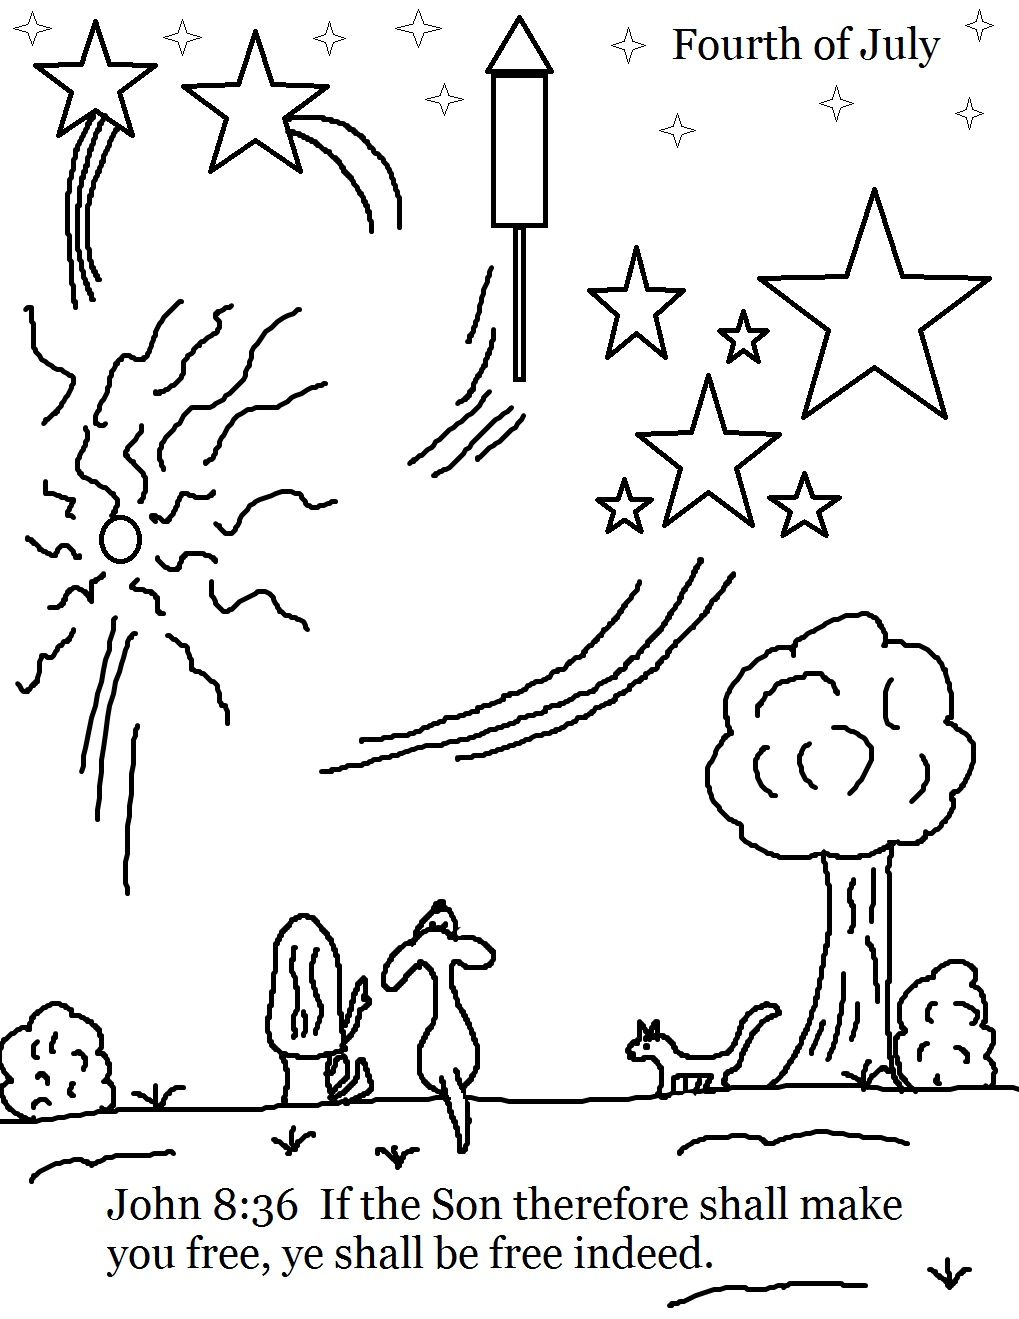 Free coloring pages fourth of july - Fourth Of July Sunday School Lesson